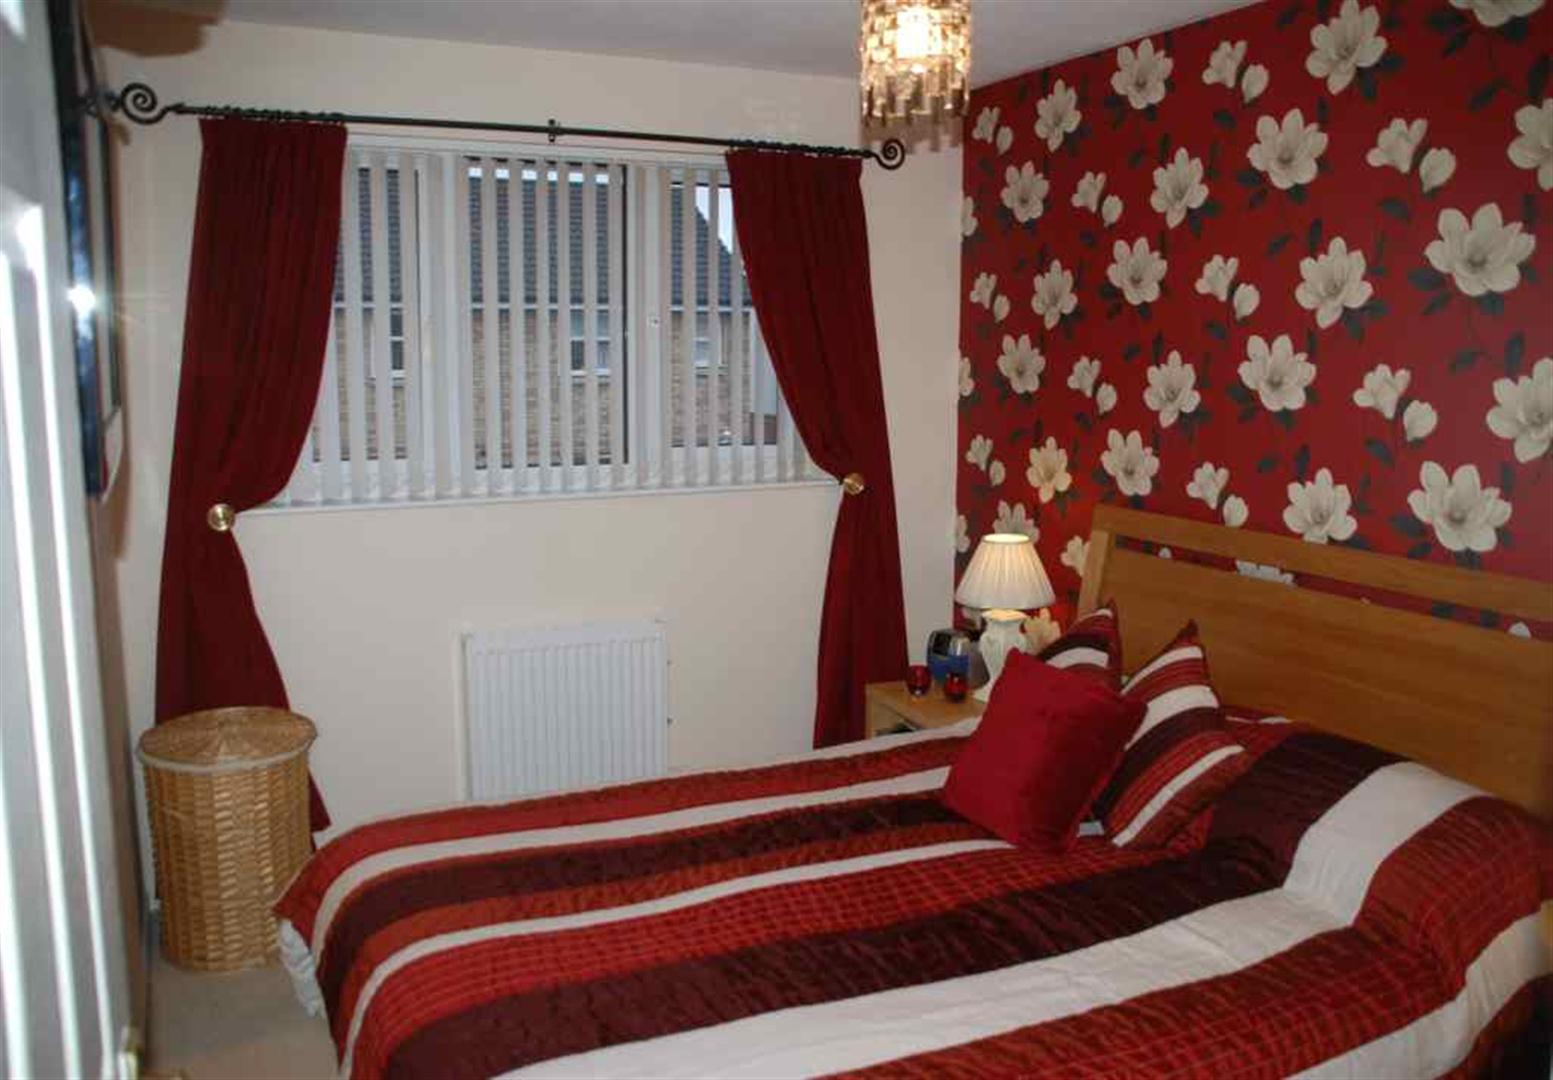 2, Mcleish Place, Tulloch, PERTH, Perthshire, PH1 2UL, UK